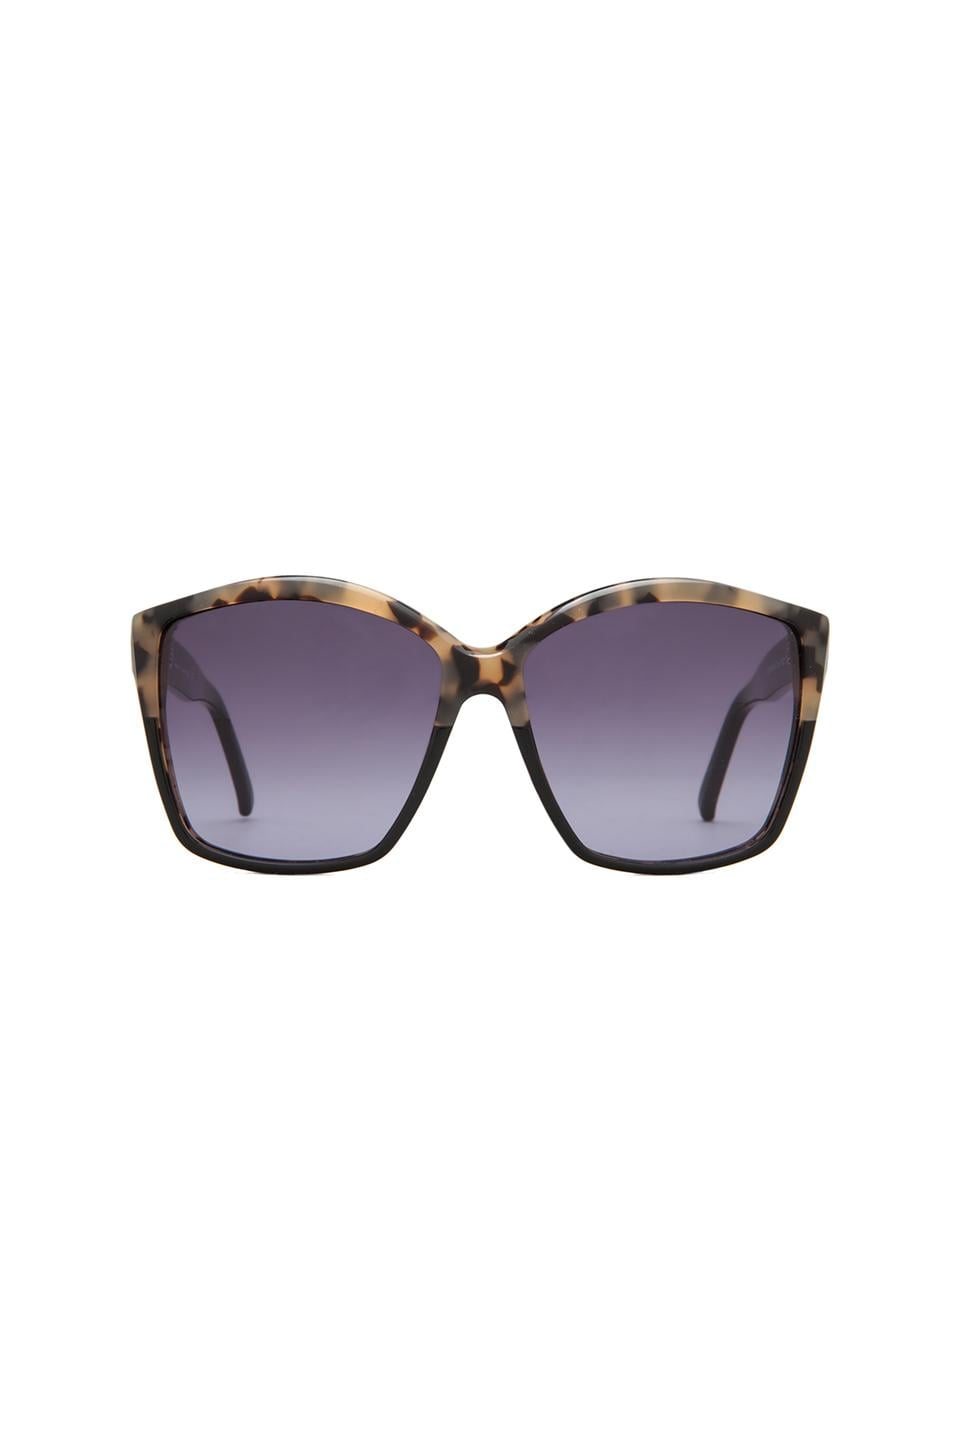 House of Harlow 1960 House of Harlow Jordana Sunglasses in Black Oreo